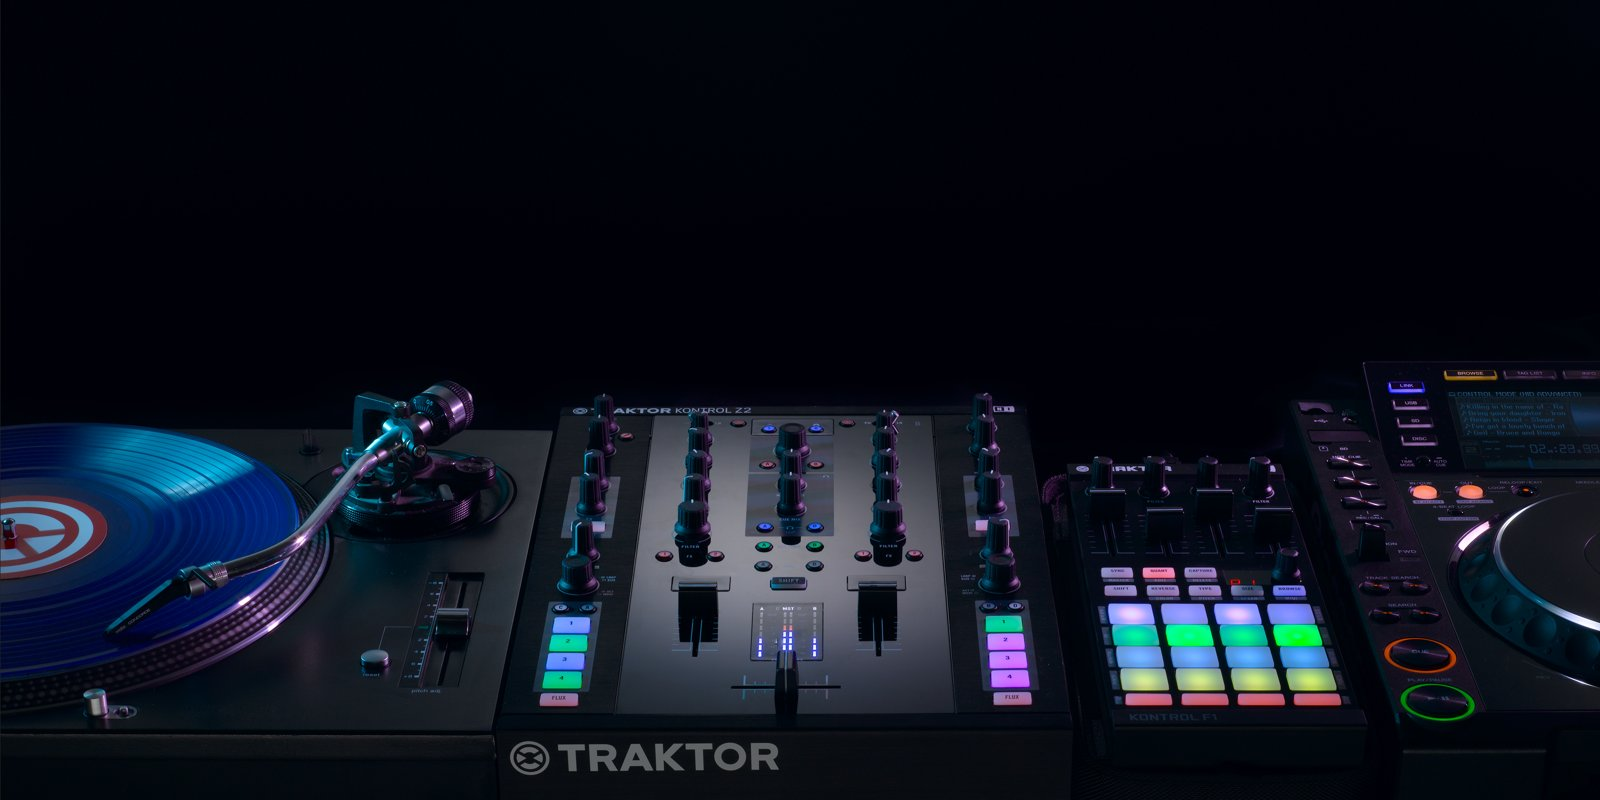 Images of Traktor Pro 2 Wallpapers Hd - #SC